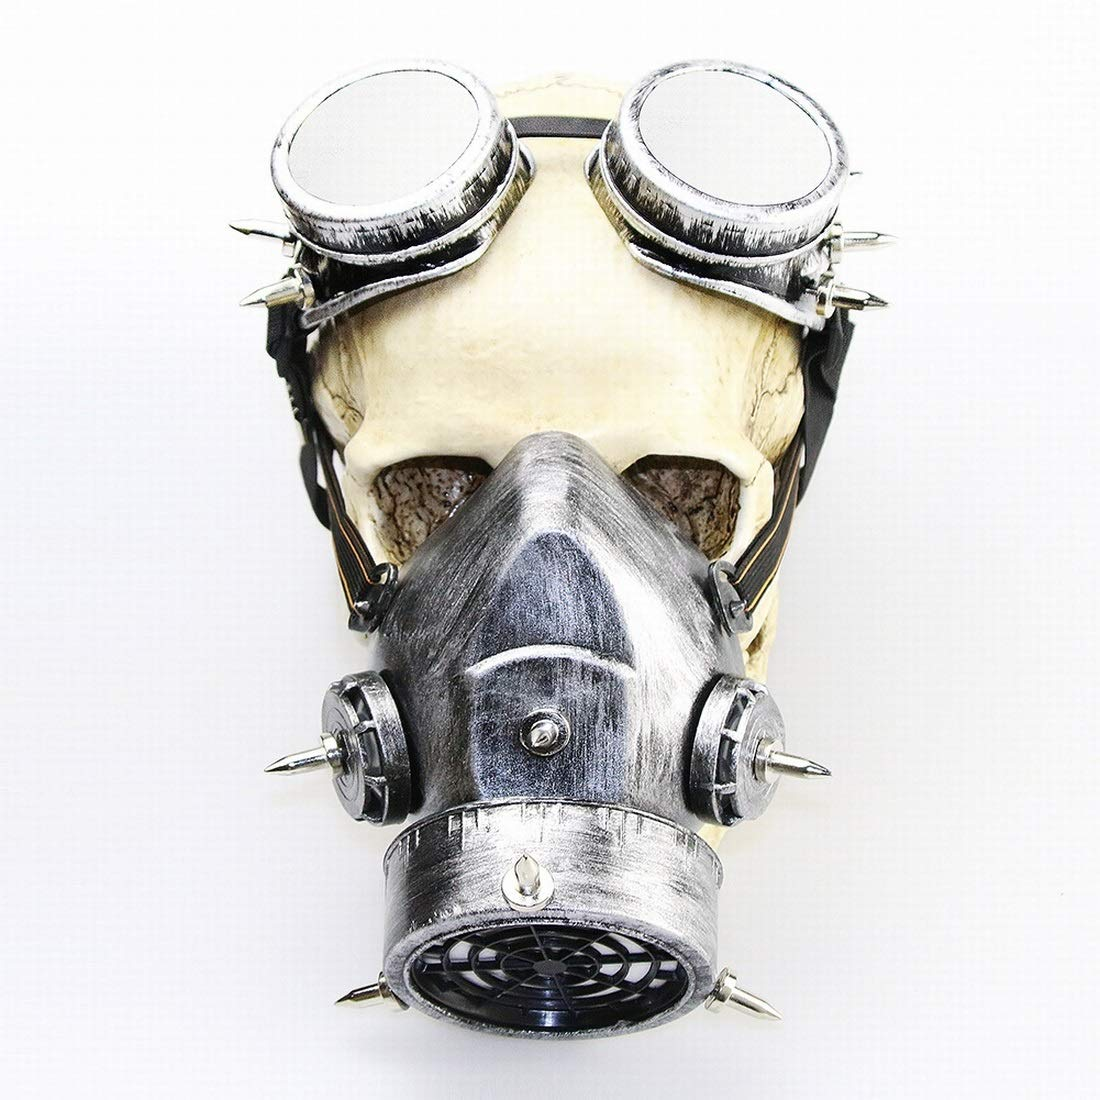 SHIZHESHOP Halloween Retro Gothic Maske Make-up Steampunk Gasmaske für Cosplay-Party (Farbe   1)